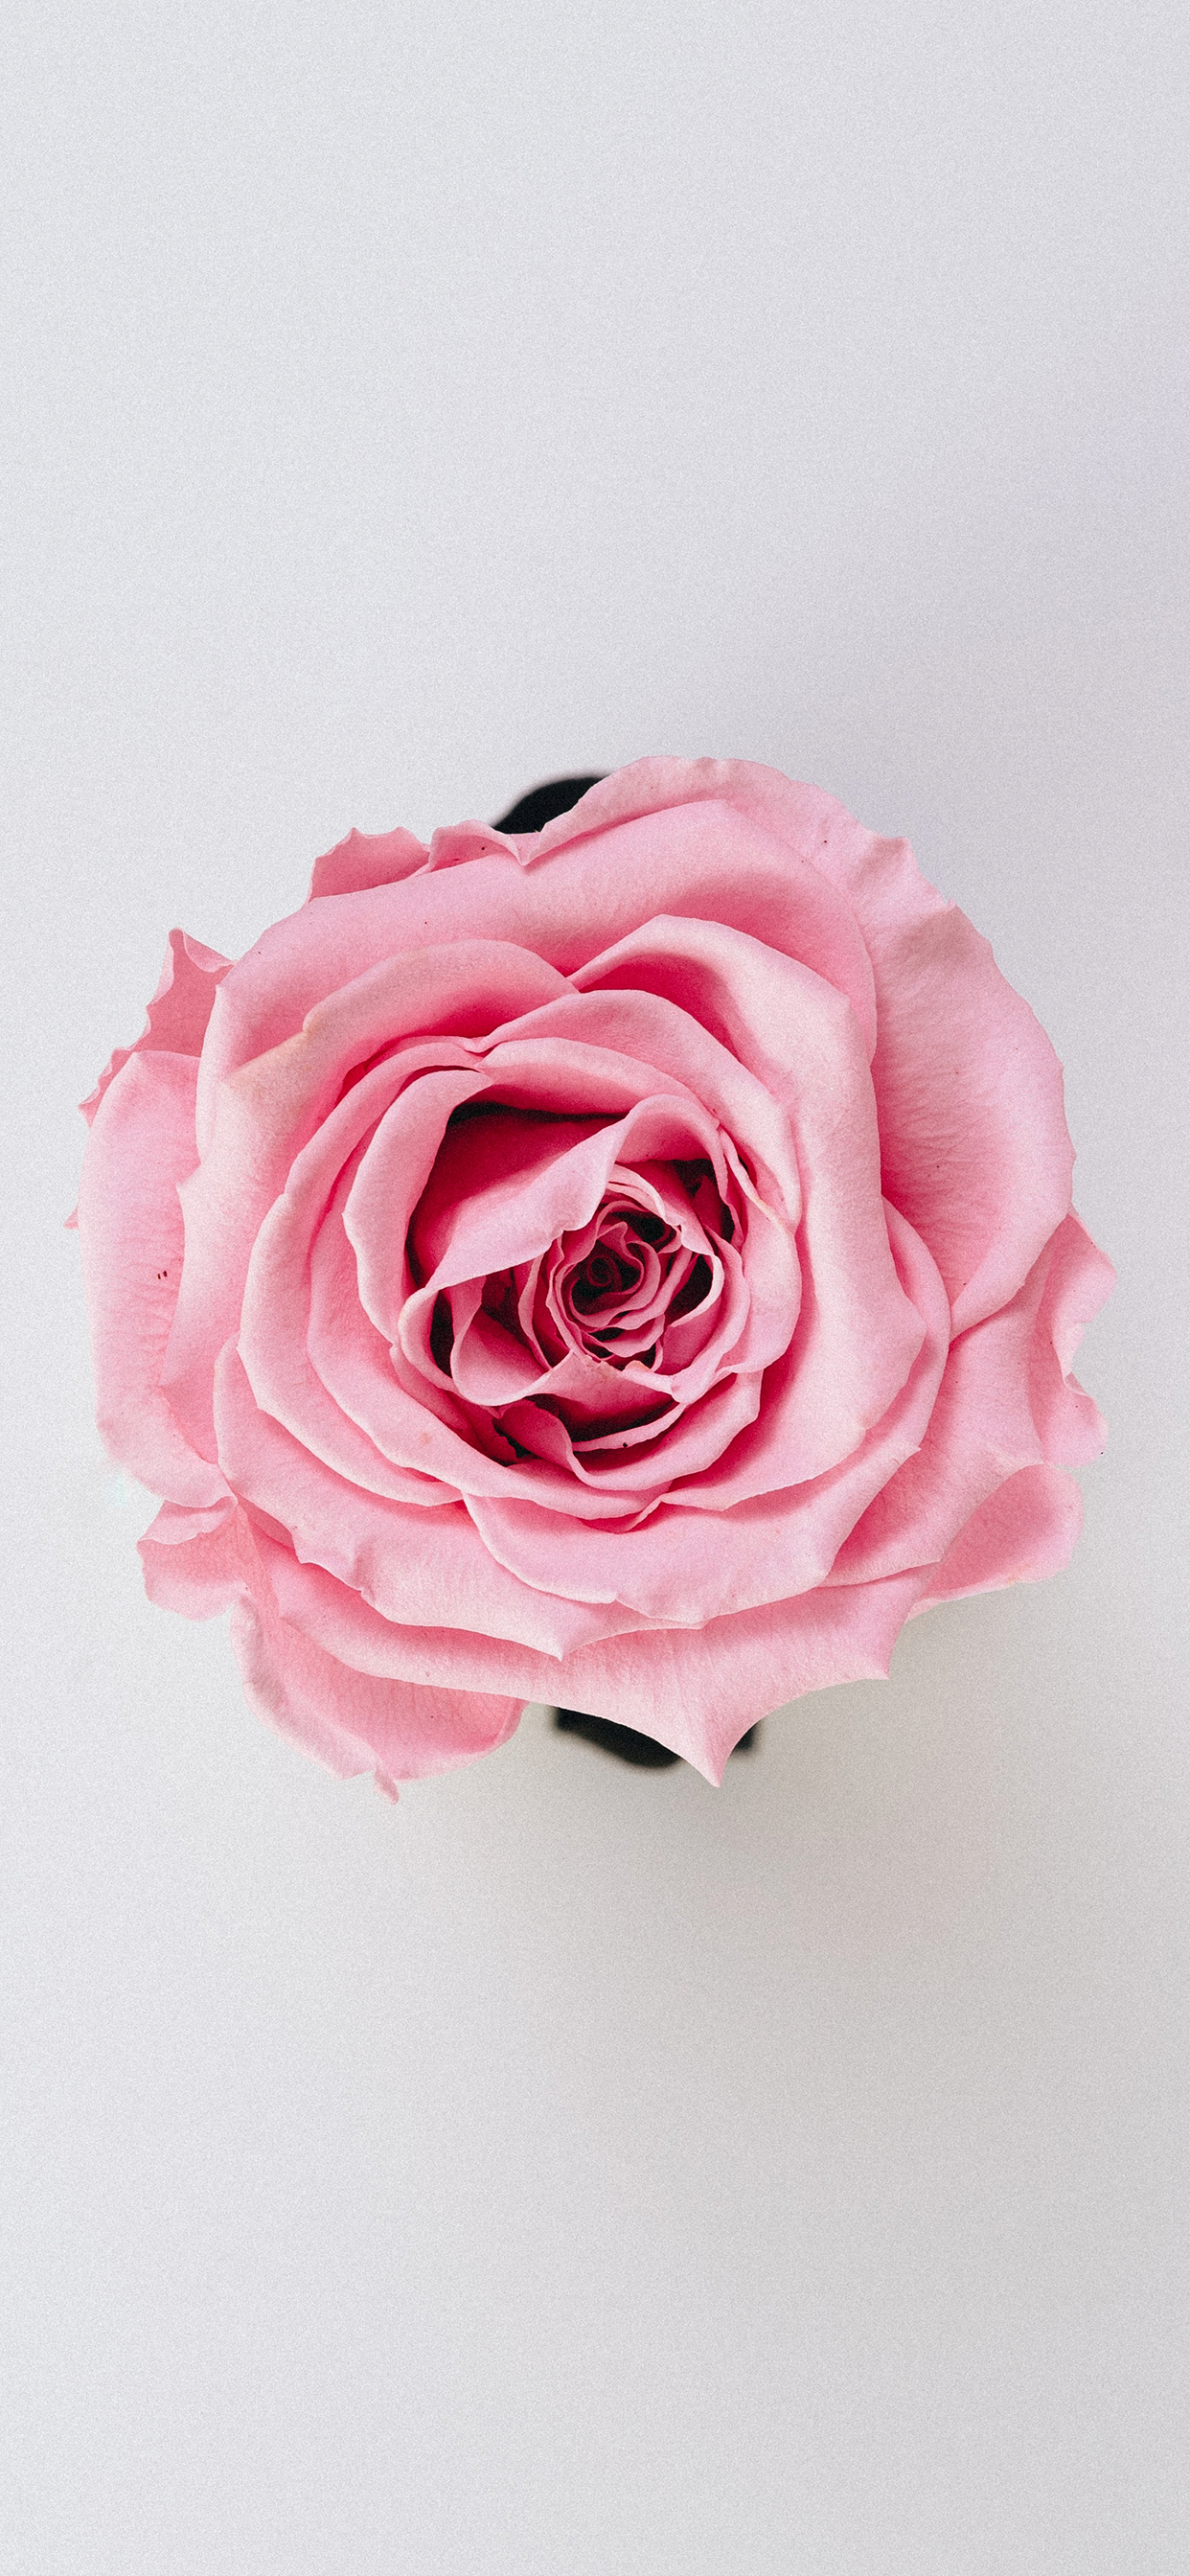 Rose Wallpaper For Iphone X 8 7 6 Free Download On 3wallpapers